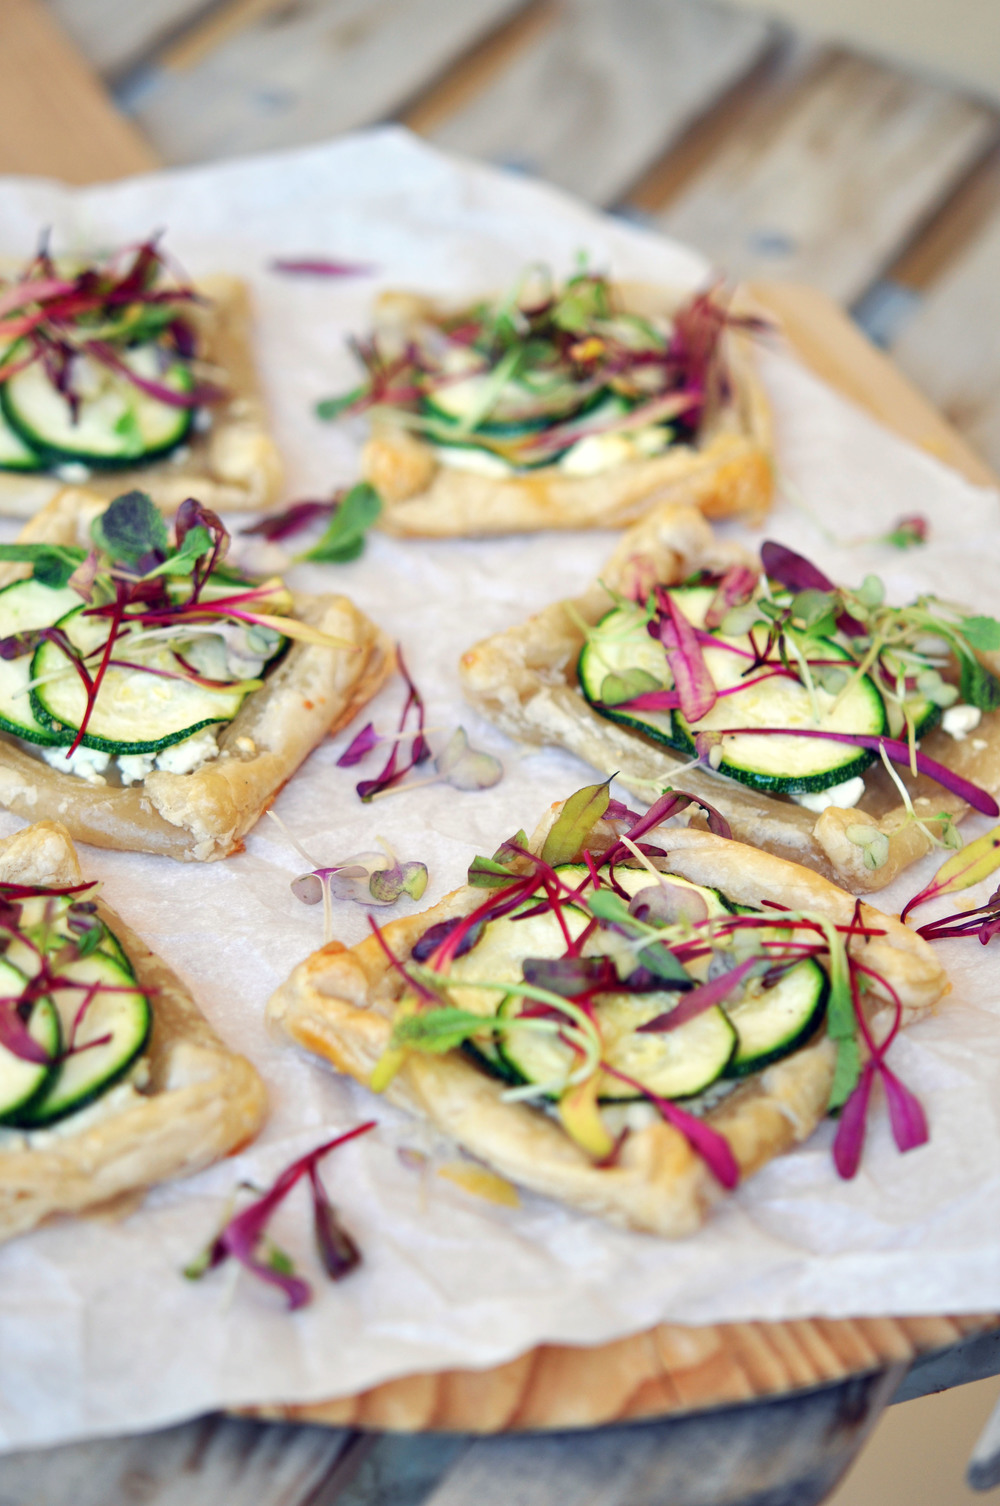 Mini Zucchini Tarts with Microgreens - a wonderful, vegetarian recipe for a light lunch or an appetizer.